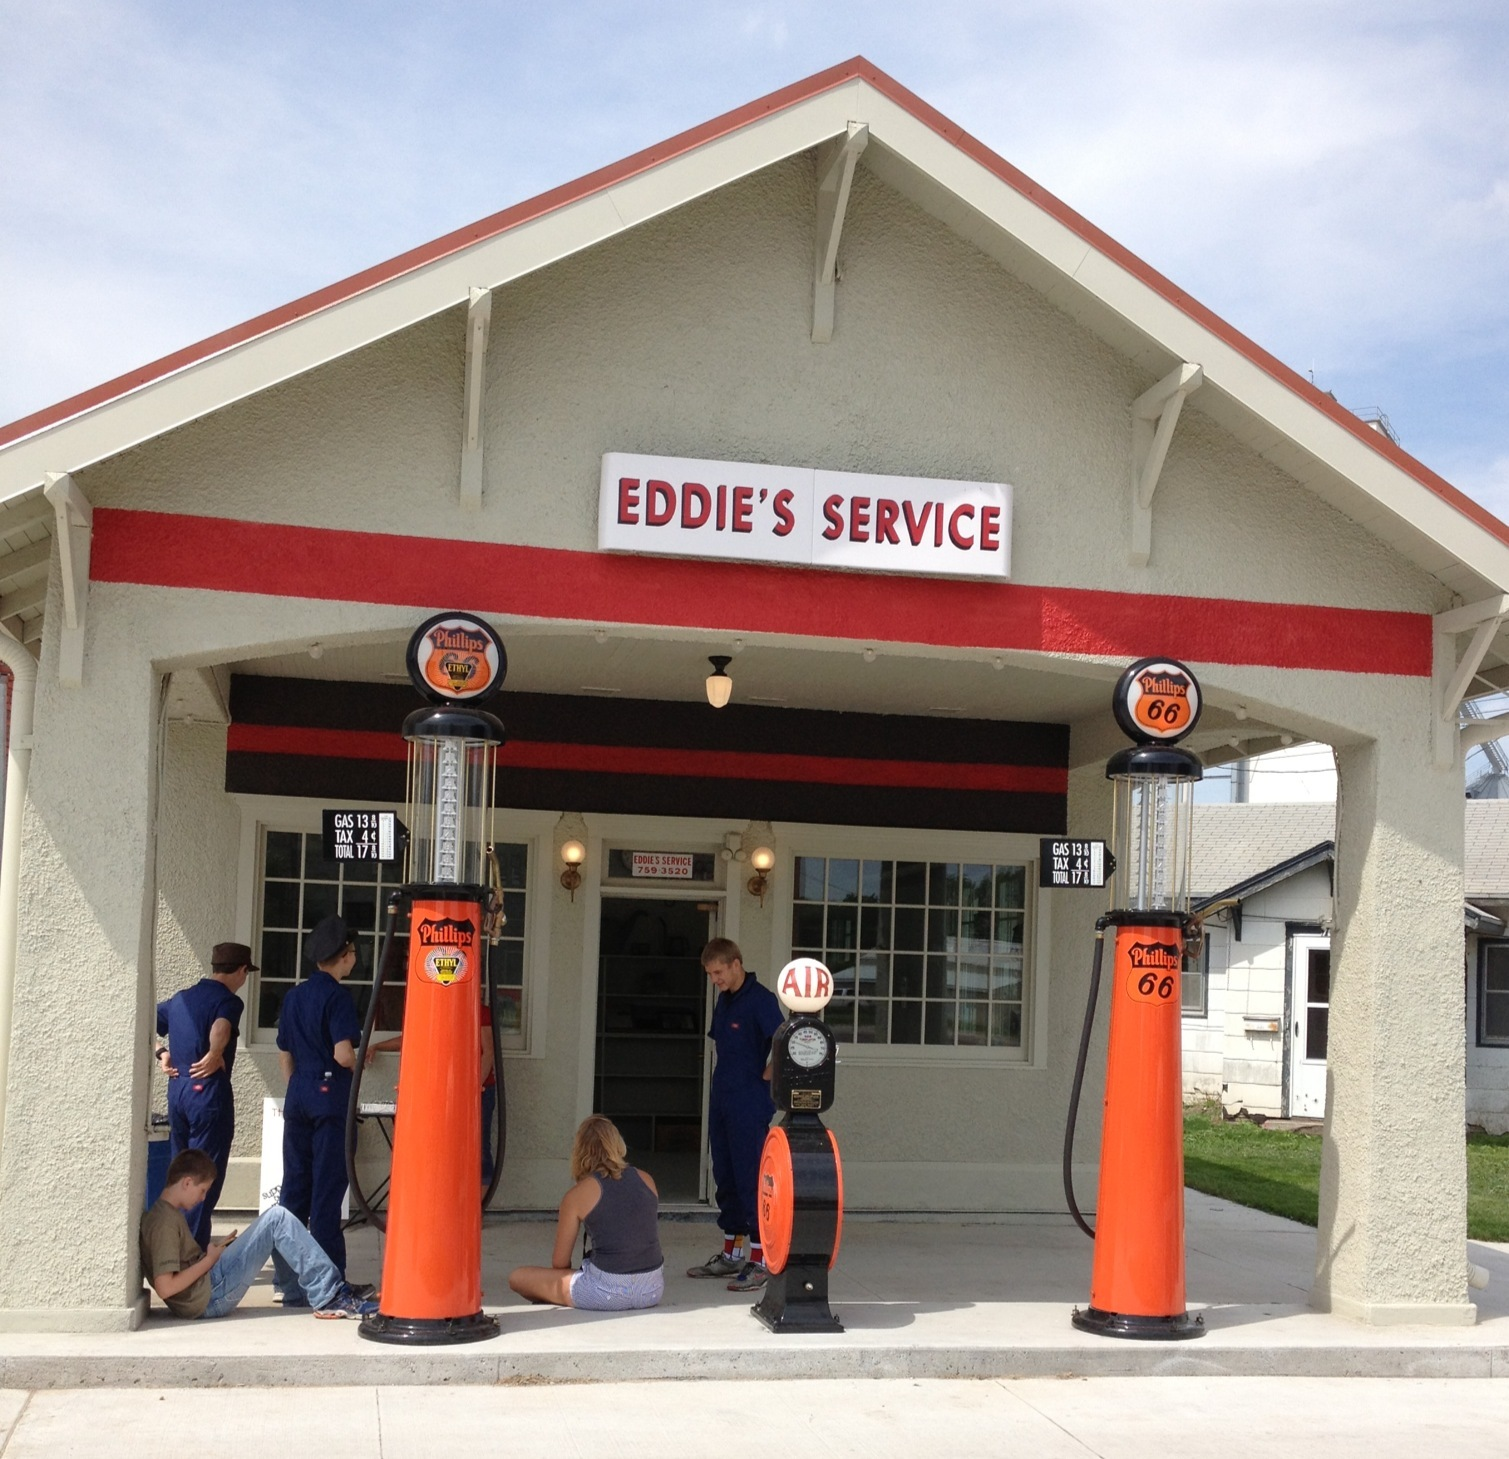 Services(Gas, Groceries, Medical, Repairs)